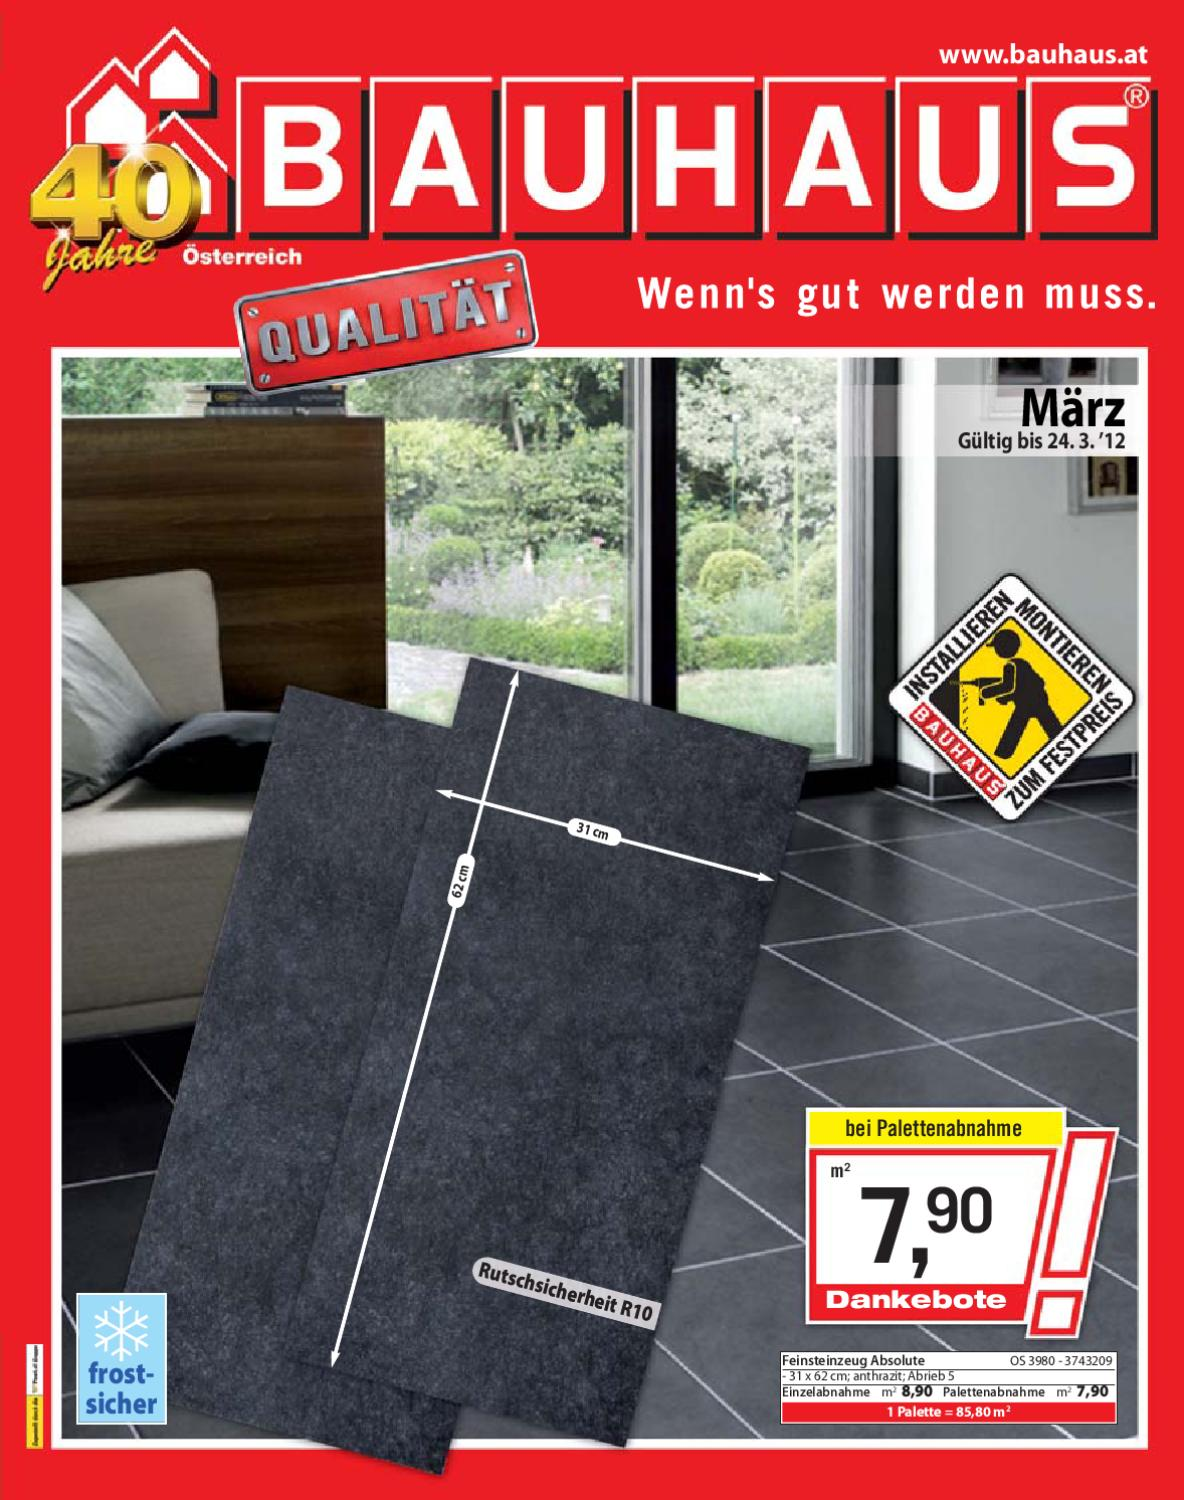 Wandfliese Natura Silk Bauhaus 27 02 25 03 12 By Aktionsfinder Gmbh Issuu